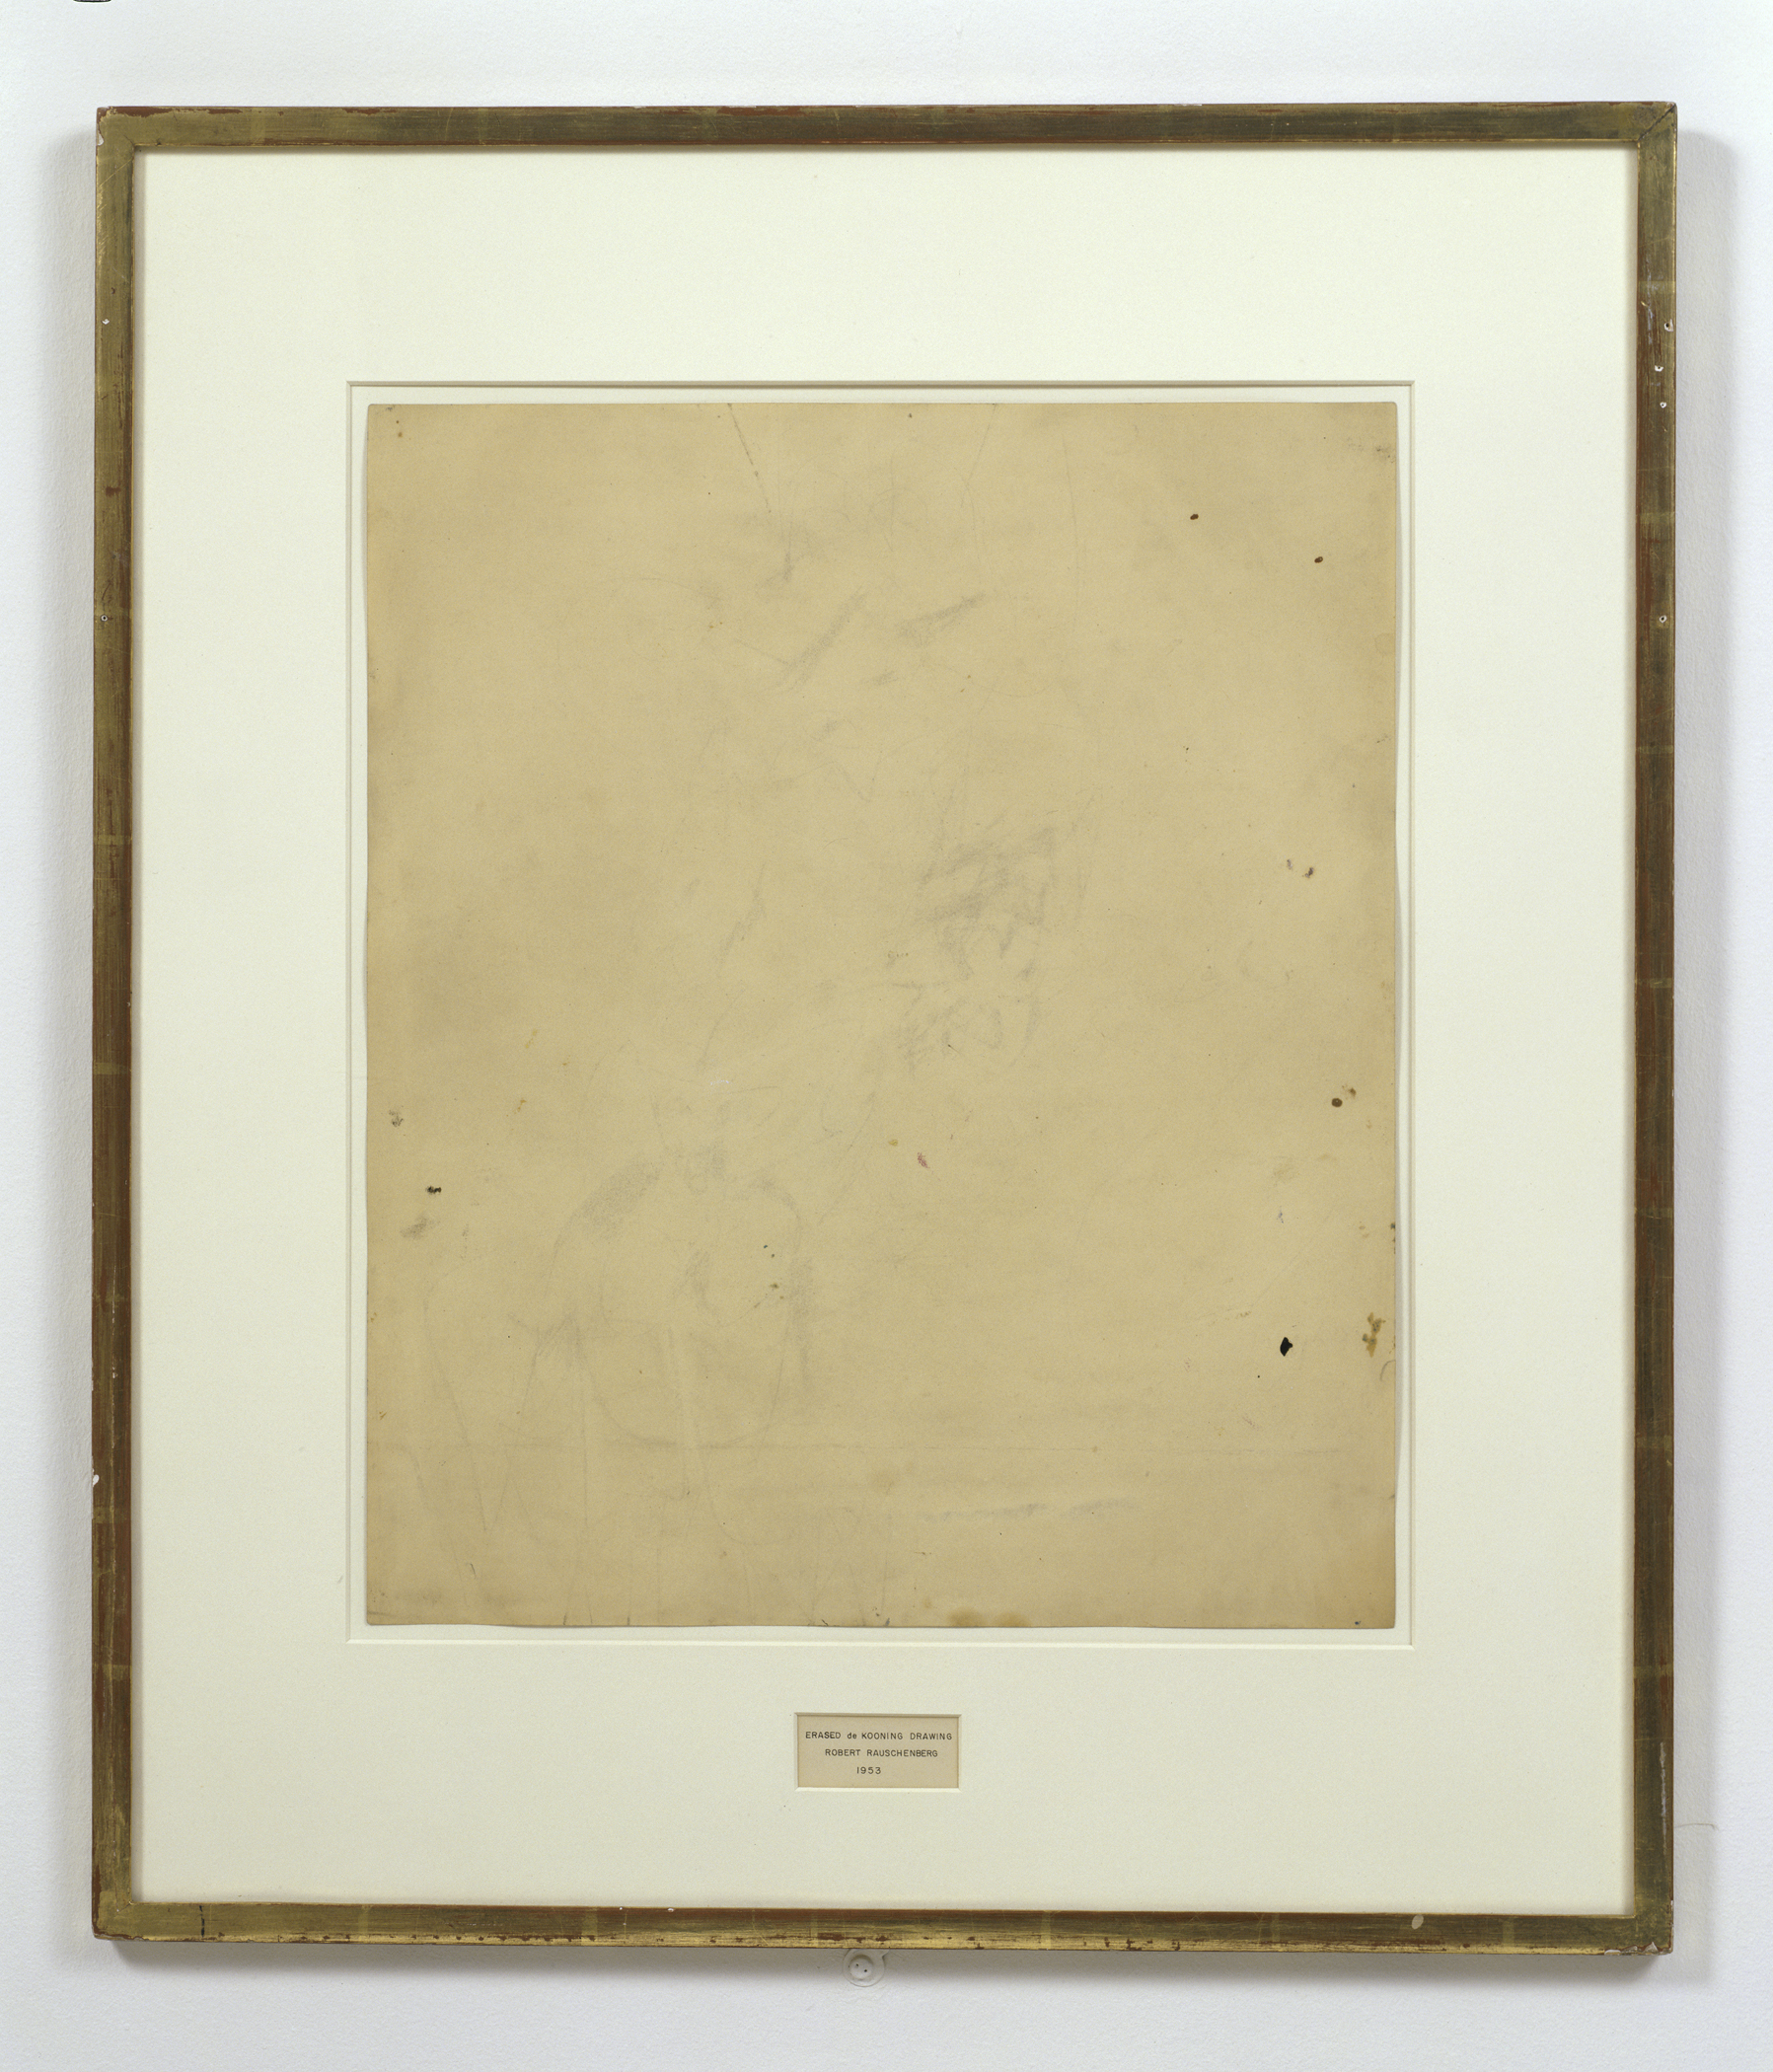 Robert Rauschenberg, Erased de Kooning (1953). Traces of drawing media on paper with label and gilded frame [64 x 55 x 1 cm]. San Francisco Museum of Modern Art, San Francisco